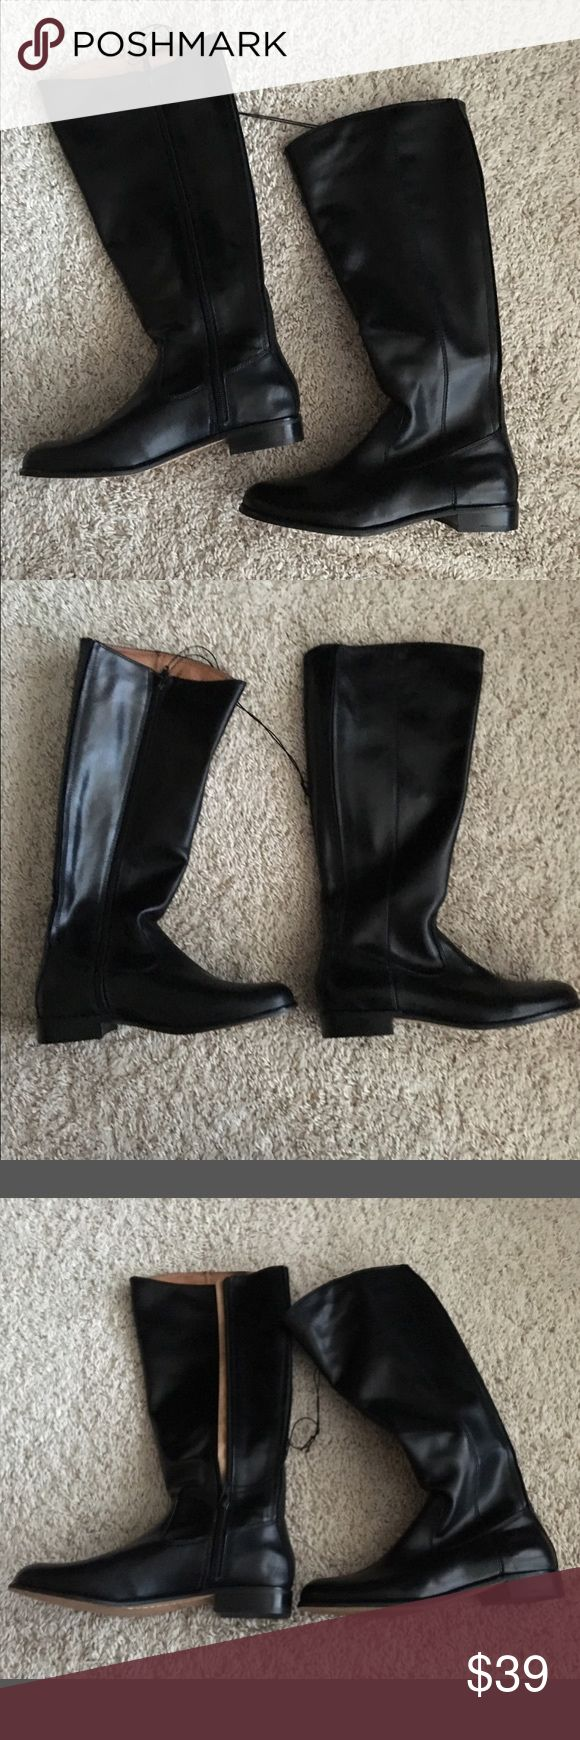 $39❤️Brand New Black Kenneth Cole Knee High Boots ❤️Closeout Sale on all Boots!  This listing is for a pair of Sexy KENNETH COLE NEW YORK Black Leather Knee High Boots.  This soft but structured premium leather boot features a padded foot bed for superior comfort. Pair them with jeans, leggings, skirts or dresses for a fun, fashion forward chic look. 